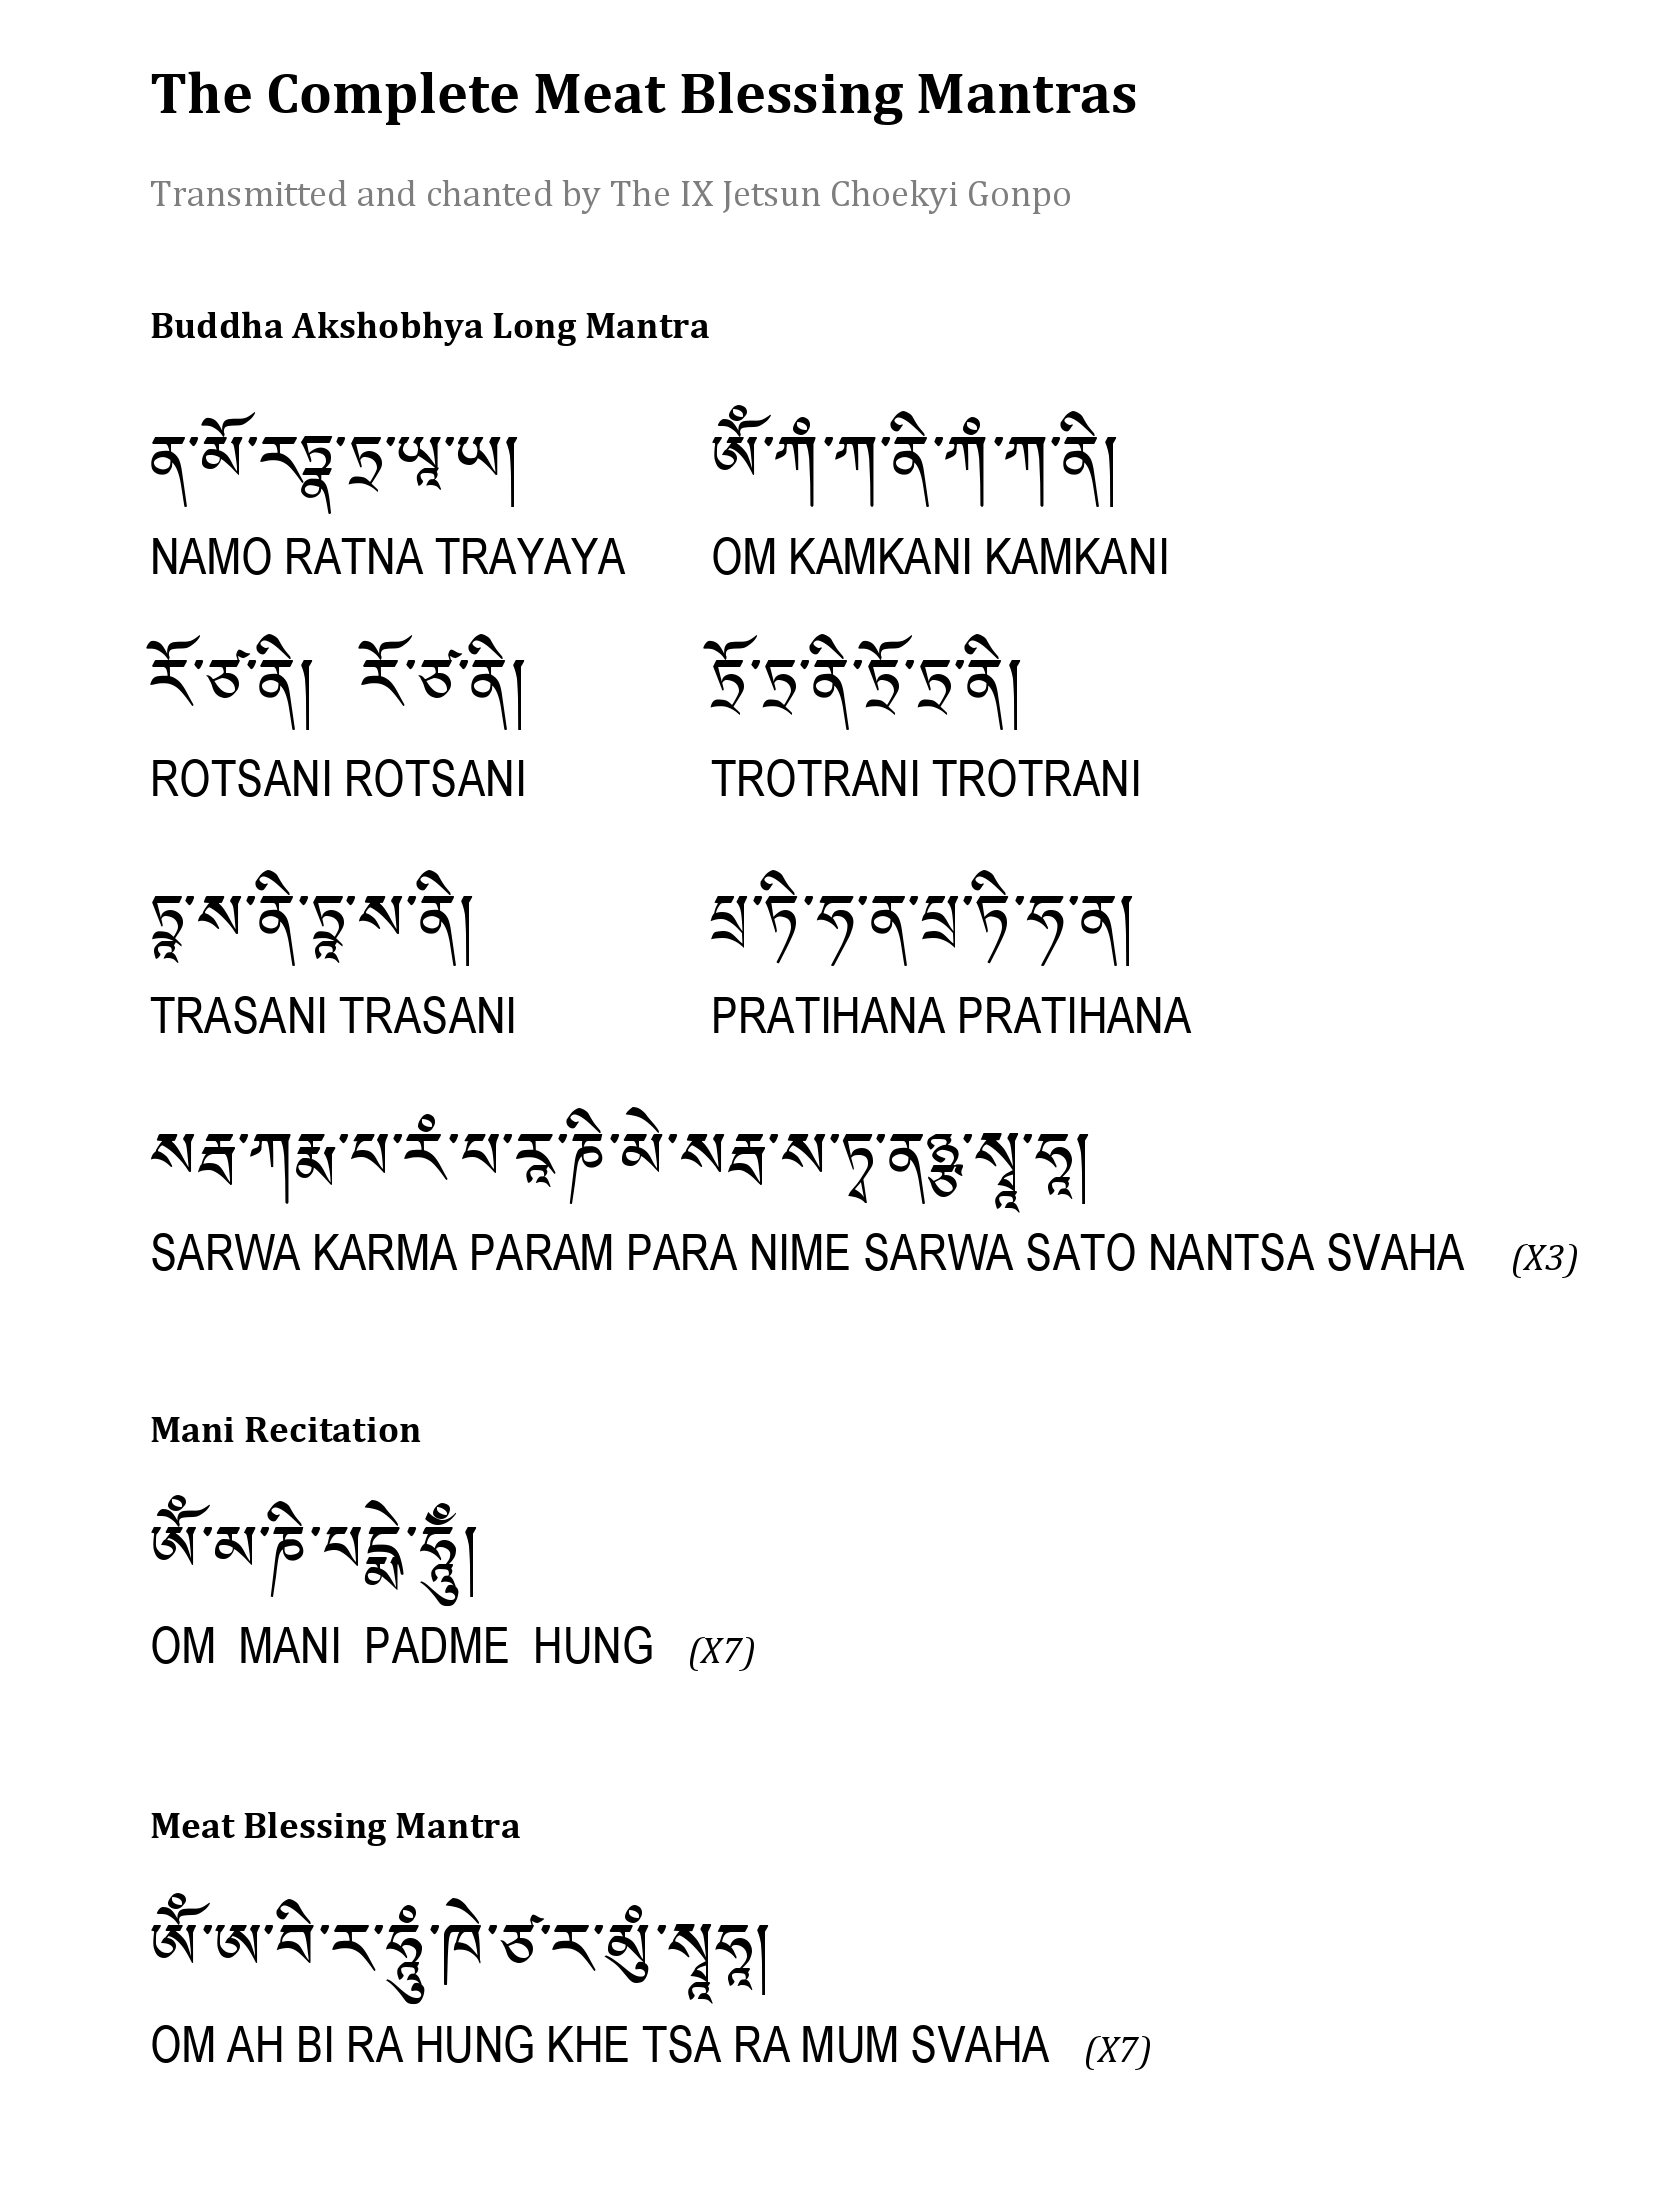 Meat Blessing Mantra by Choekyi Gonpo IX